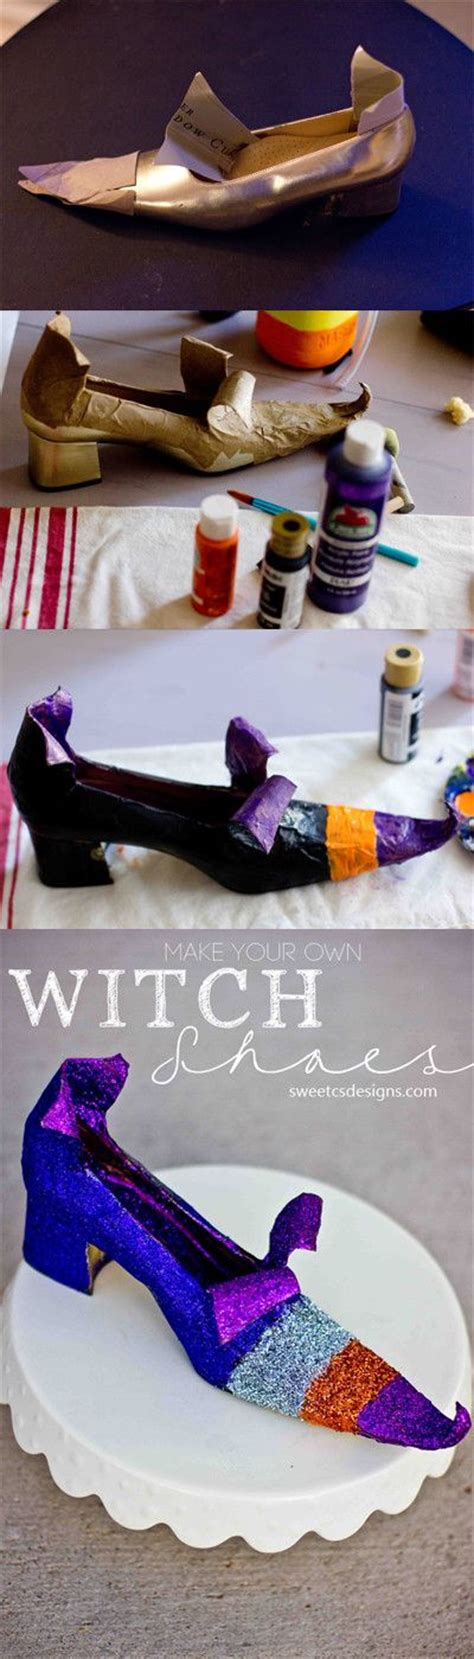 diy witch shoes make your own witch shoes crafts and crafts